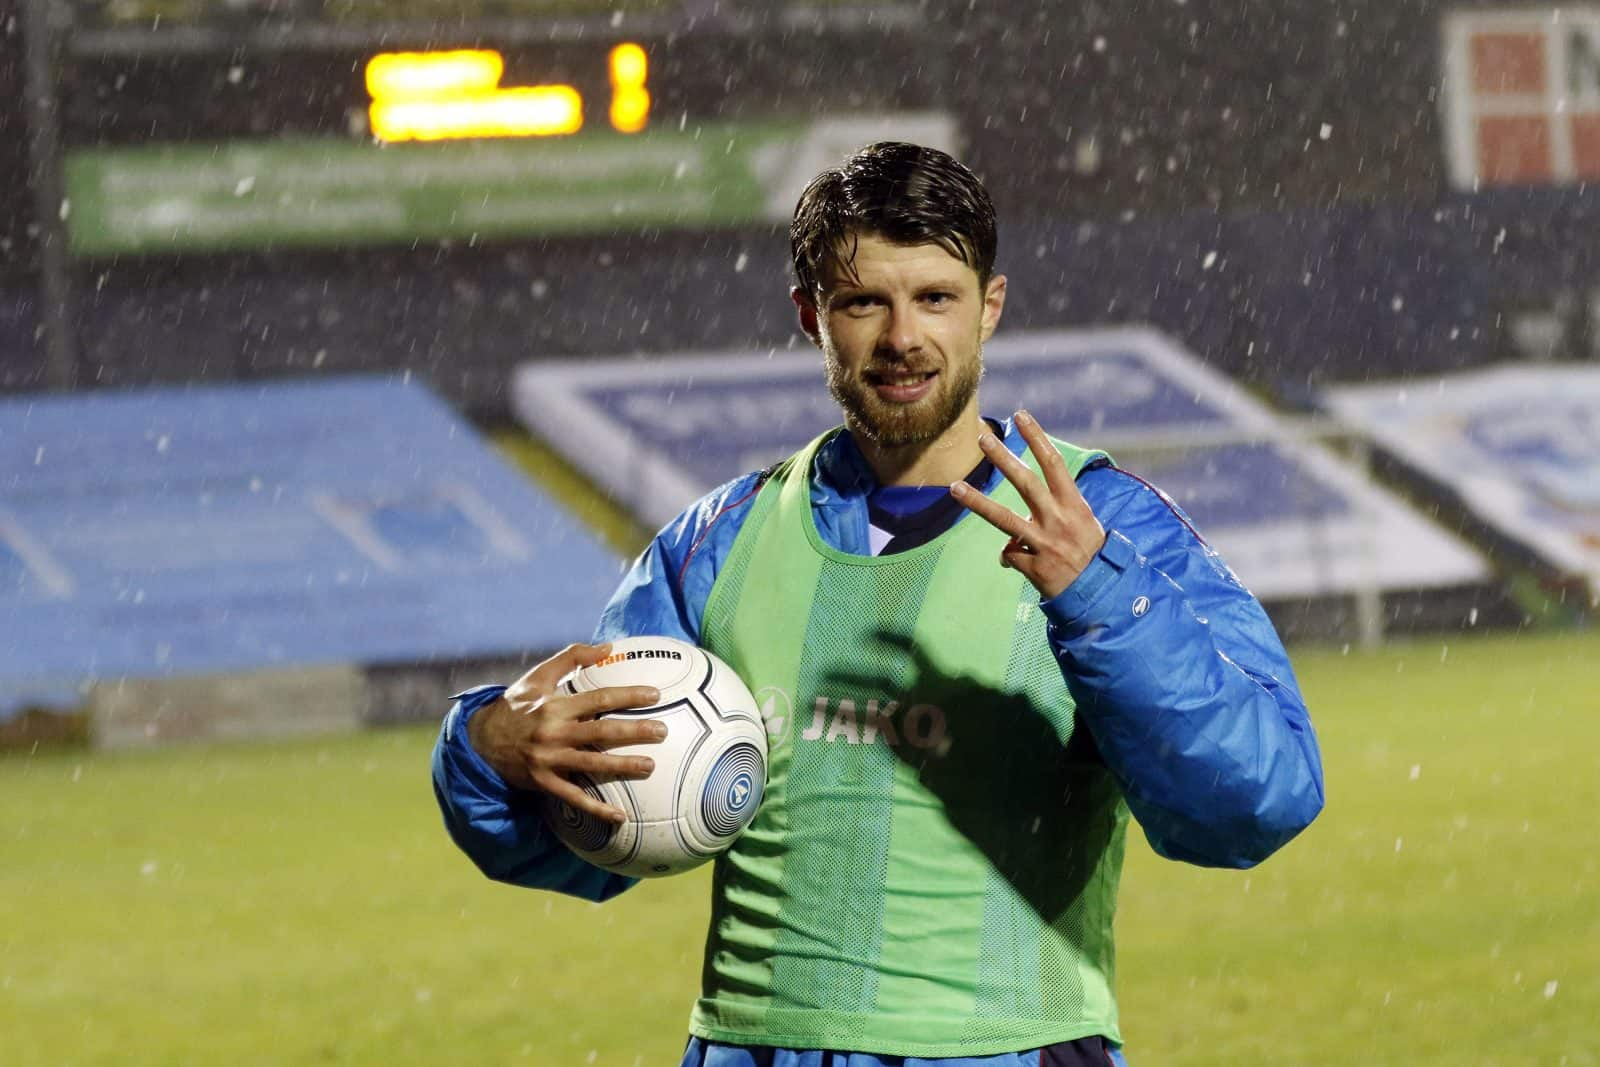 Jason Oswell bags the match ball for his hat trick